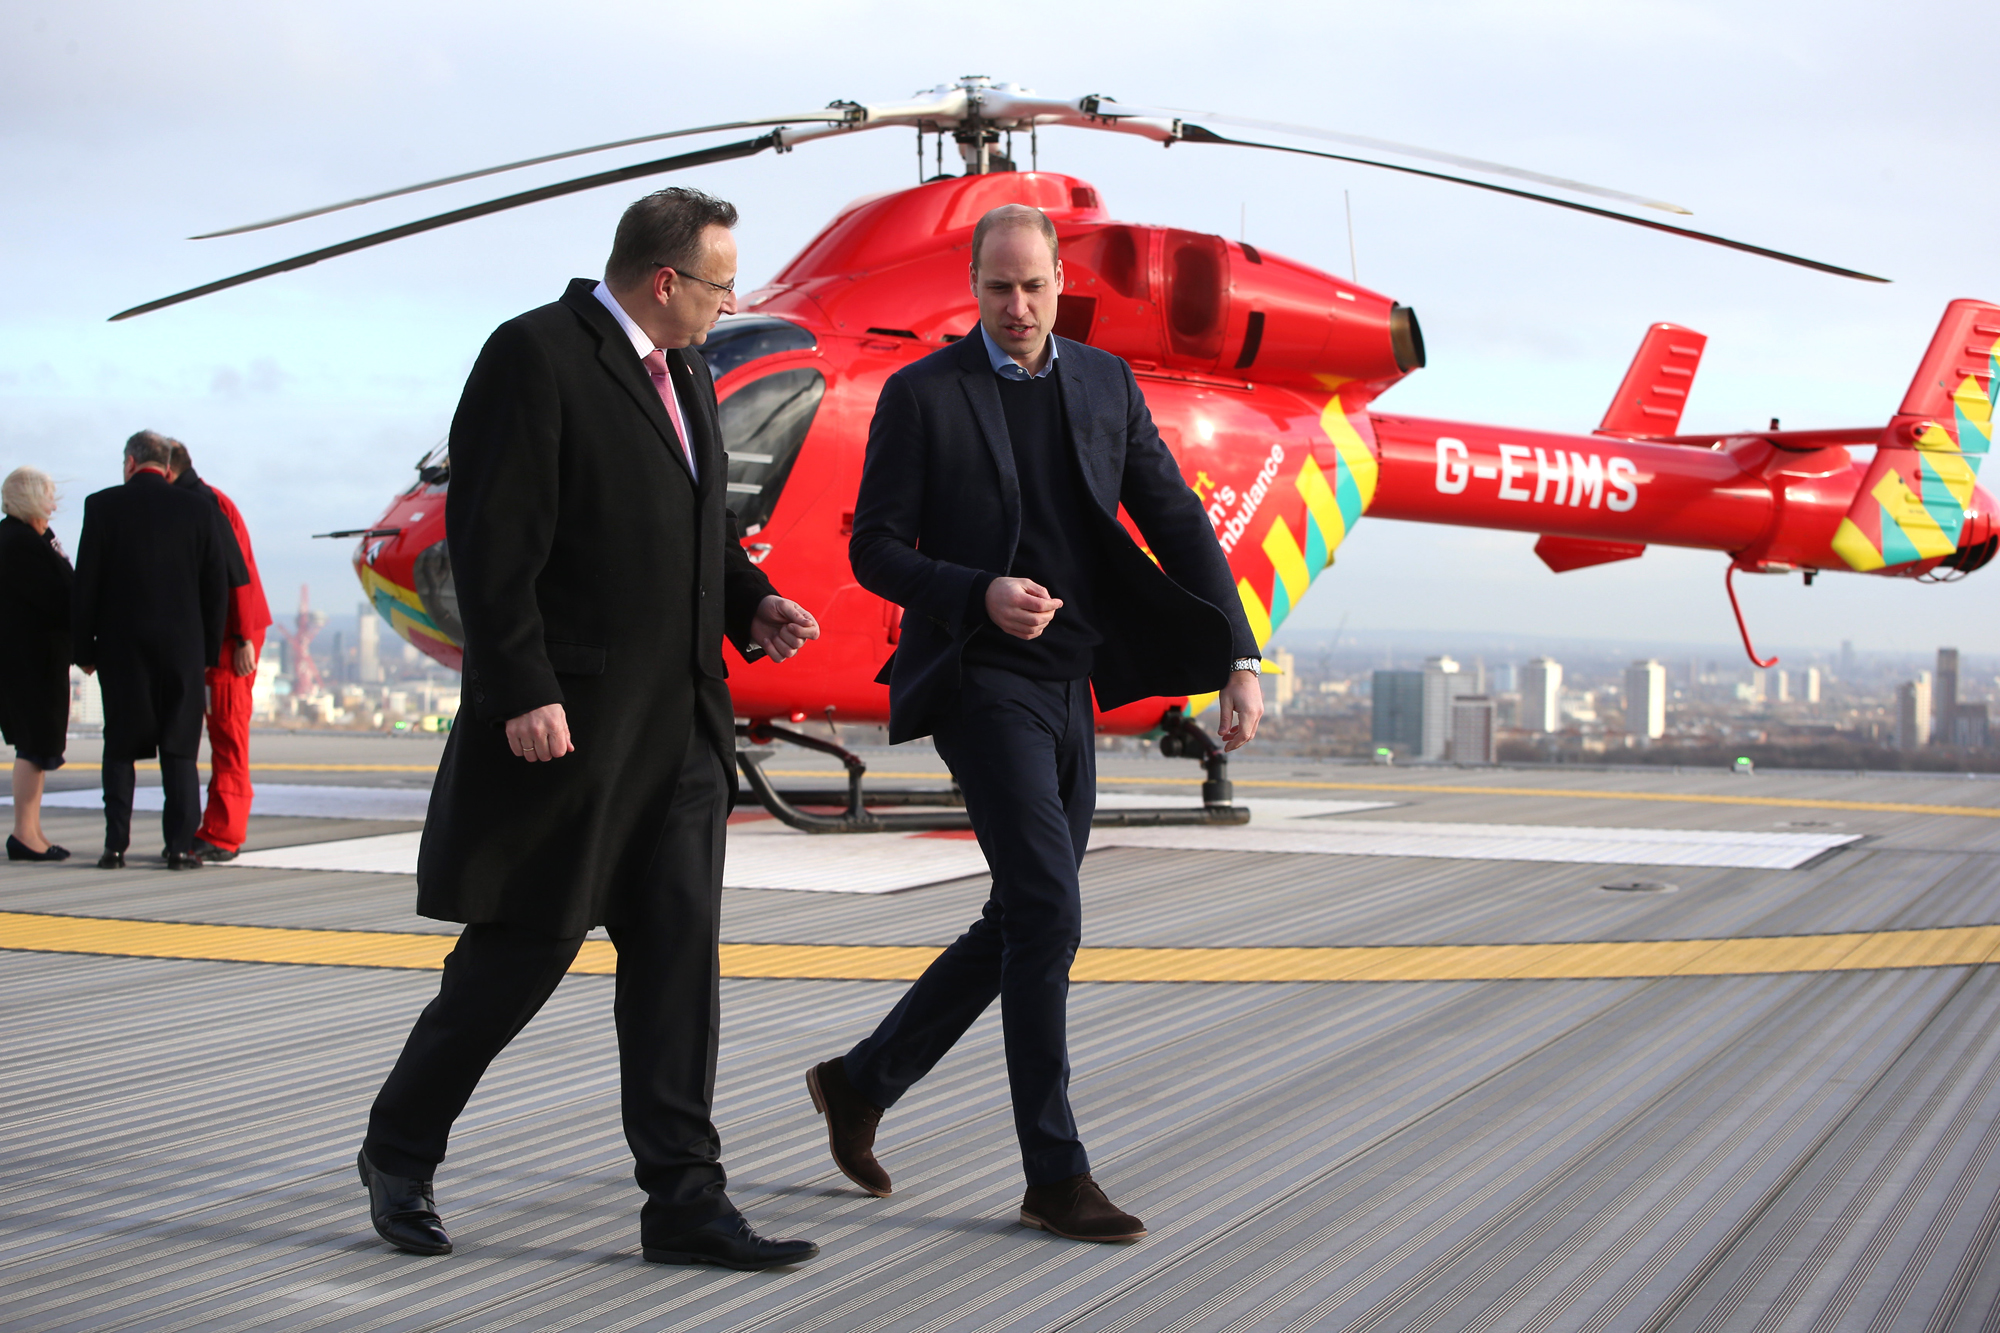 The Duke Of Cambridge Visits London's Air Ambulance Charity